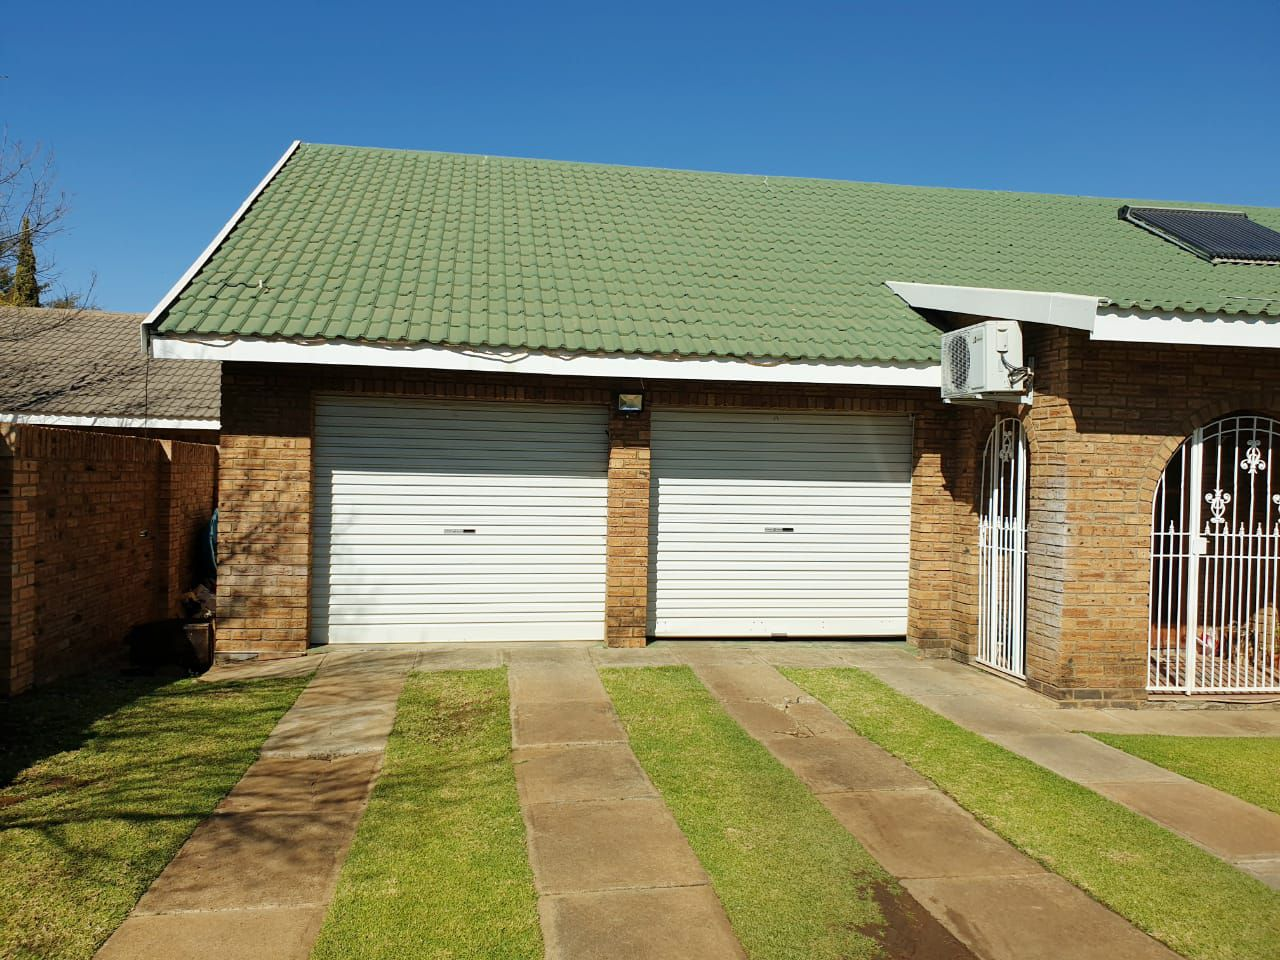 House in Kanonierspark - WhatsApp Image 2019-07-15 at 12.11.30.jpeg